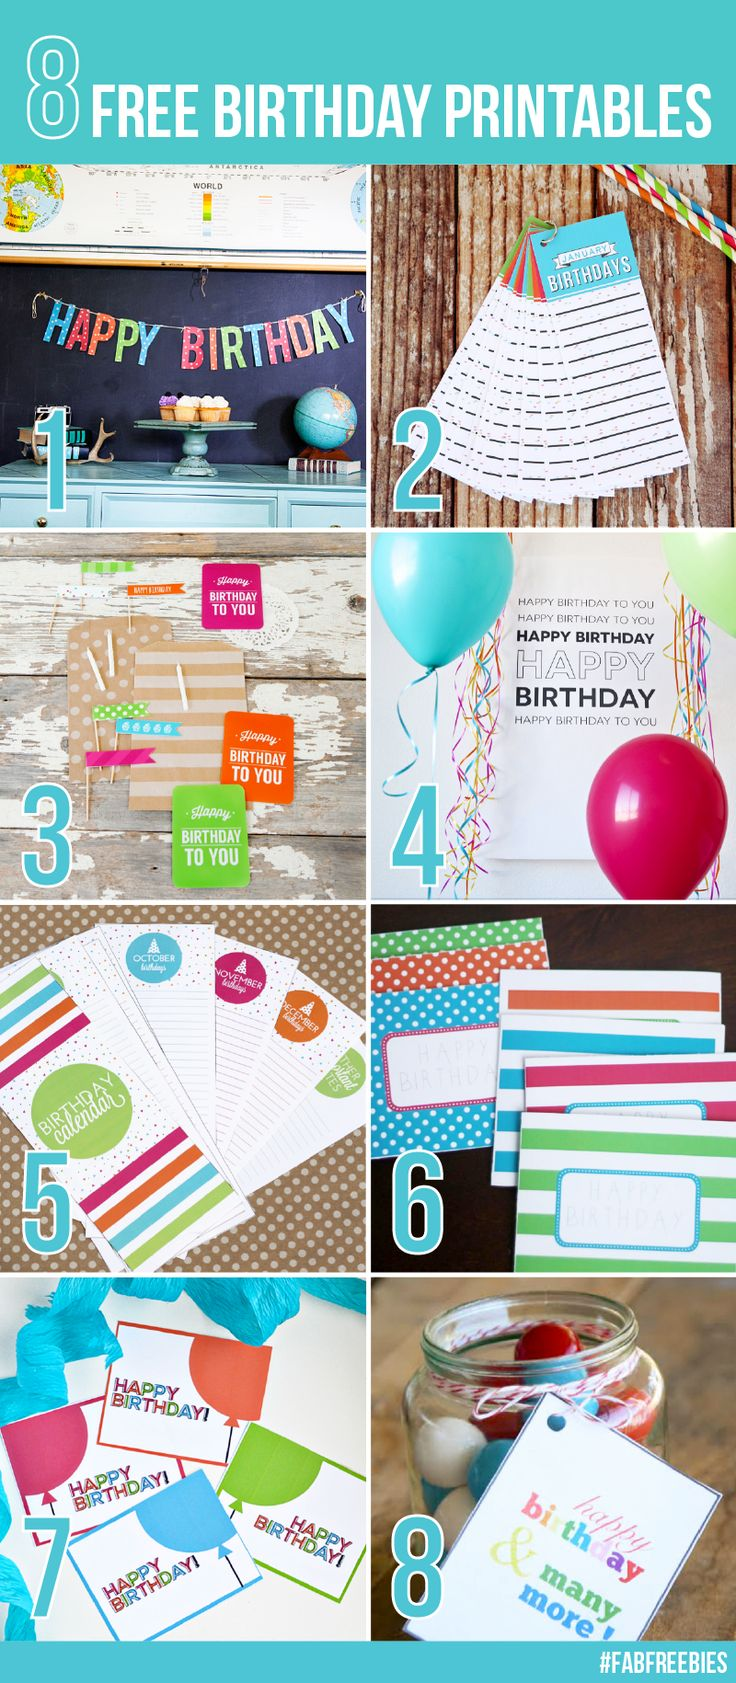 Happy Birthday Cards + 7 more free birthday printables!